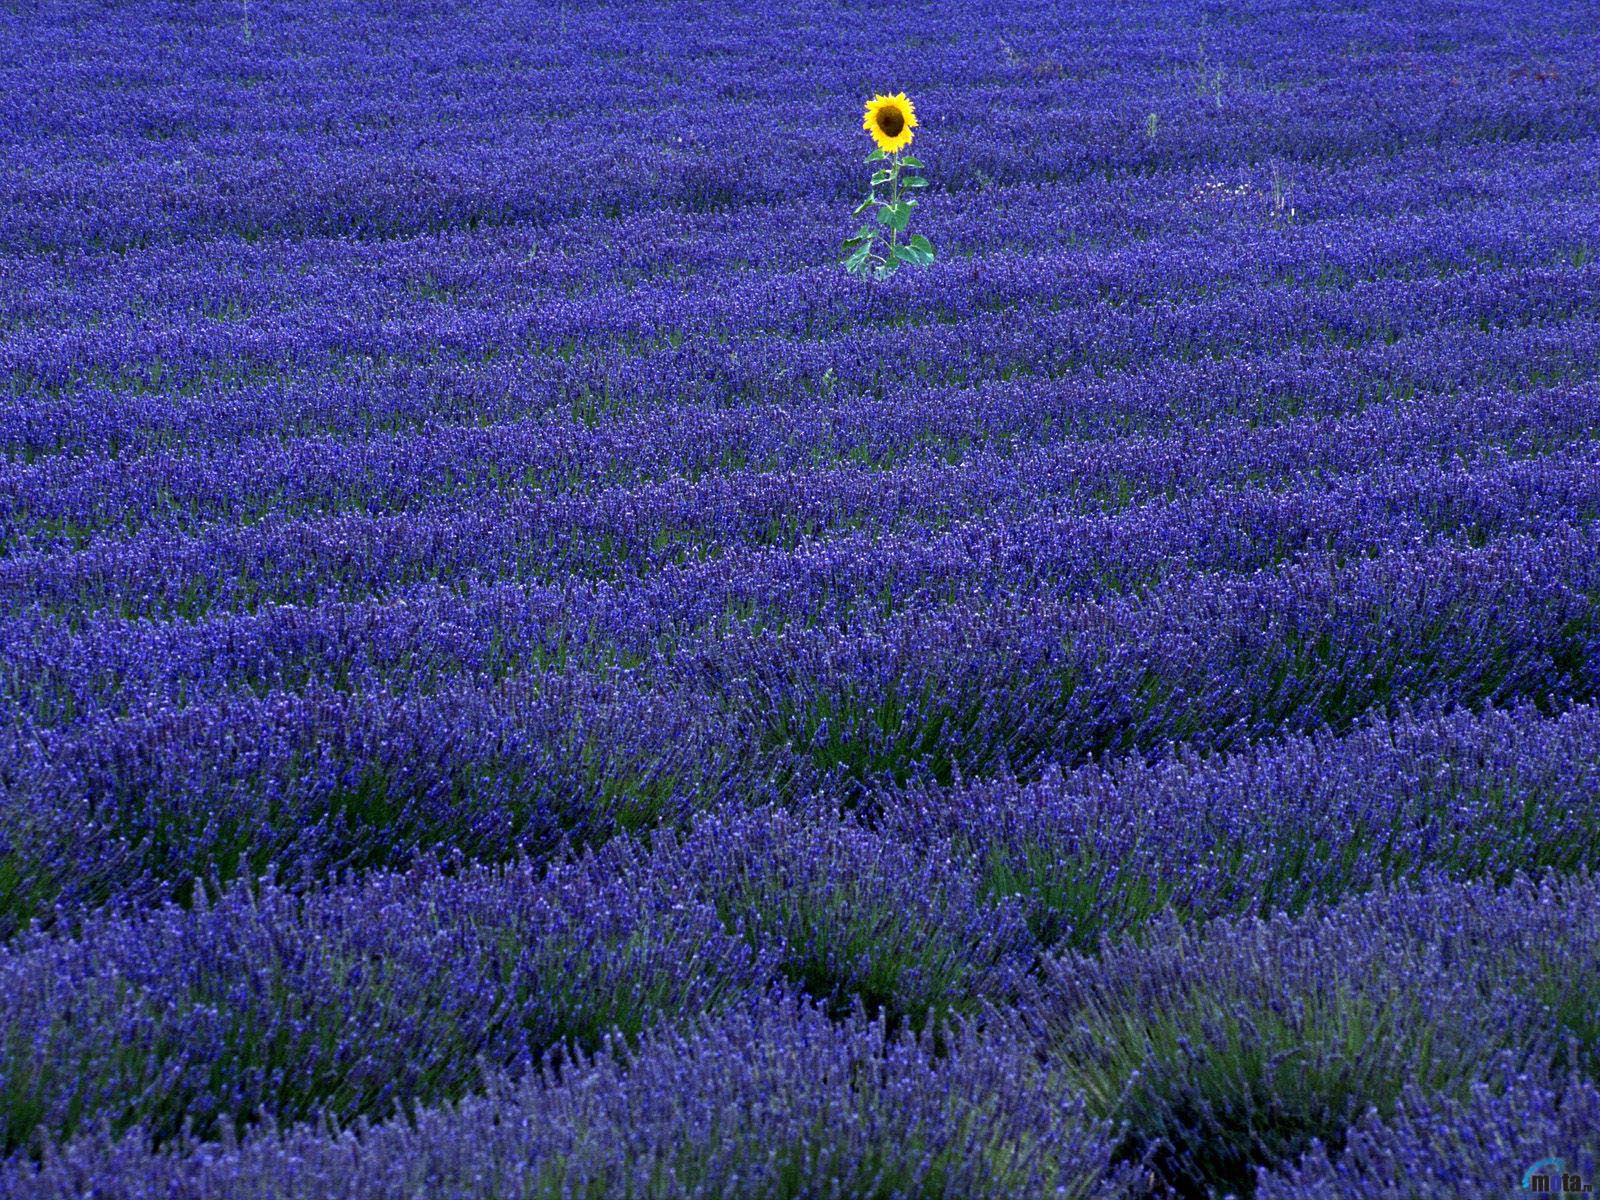 Wallpaper sunflower purple lavender Sunflower in lavender field 1600x1200